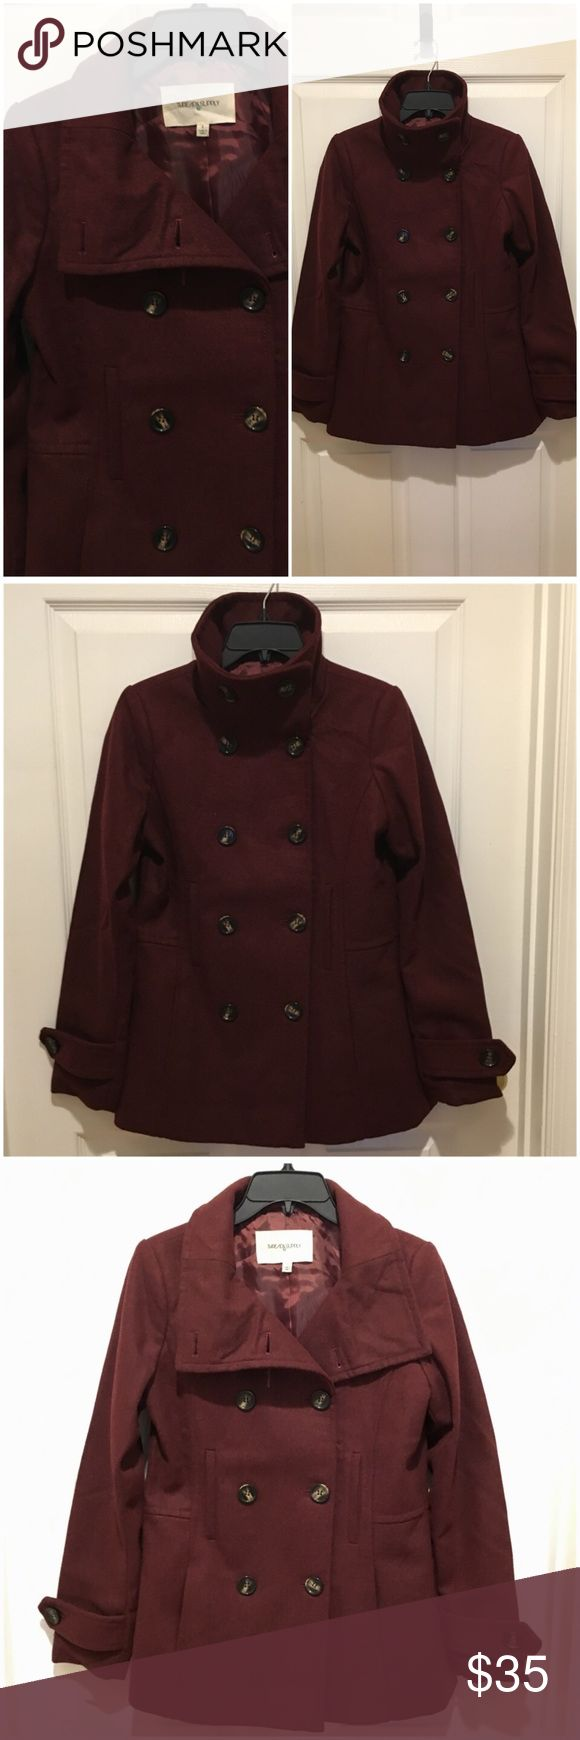 Thread & Supply Double breasted Peacoat Double-breasted peacoat in beautiful Oxblood color - Bought from Nordstrom, sold out color - Excellent condition, Never used, just stored after purchase - Very flattering fit and a perfect transitional coat ❤️All of my items are stored in a smoke-free & pet-free home. ❤️Free gifts await buyers with purchases of $50 or more. Thread and Supply Jackets & Coats Pea Coats